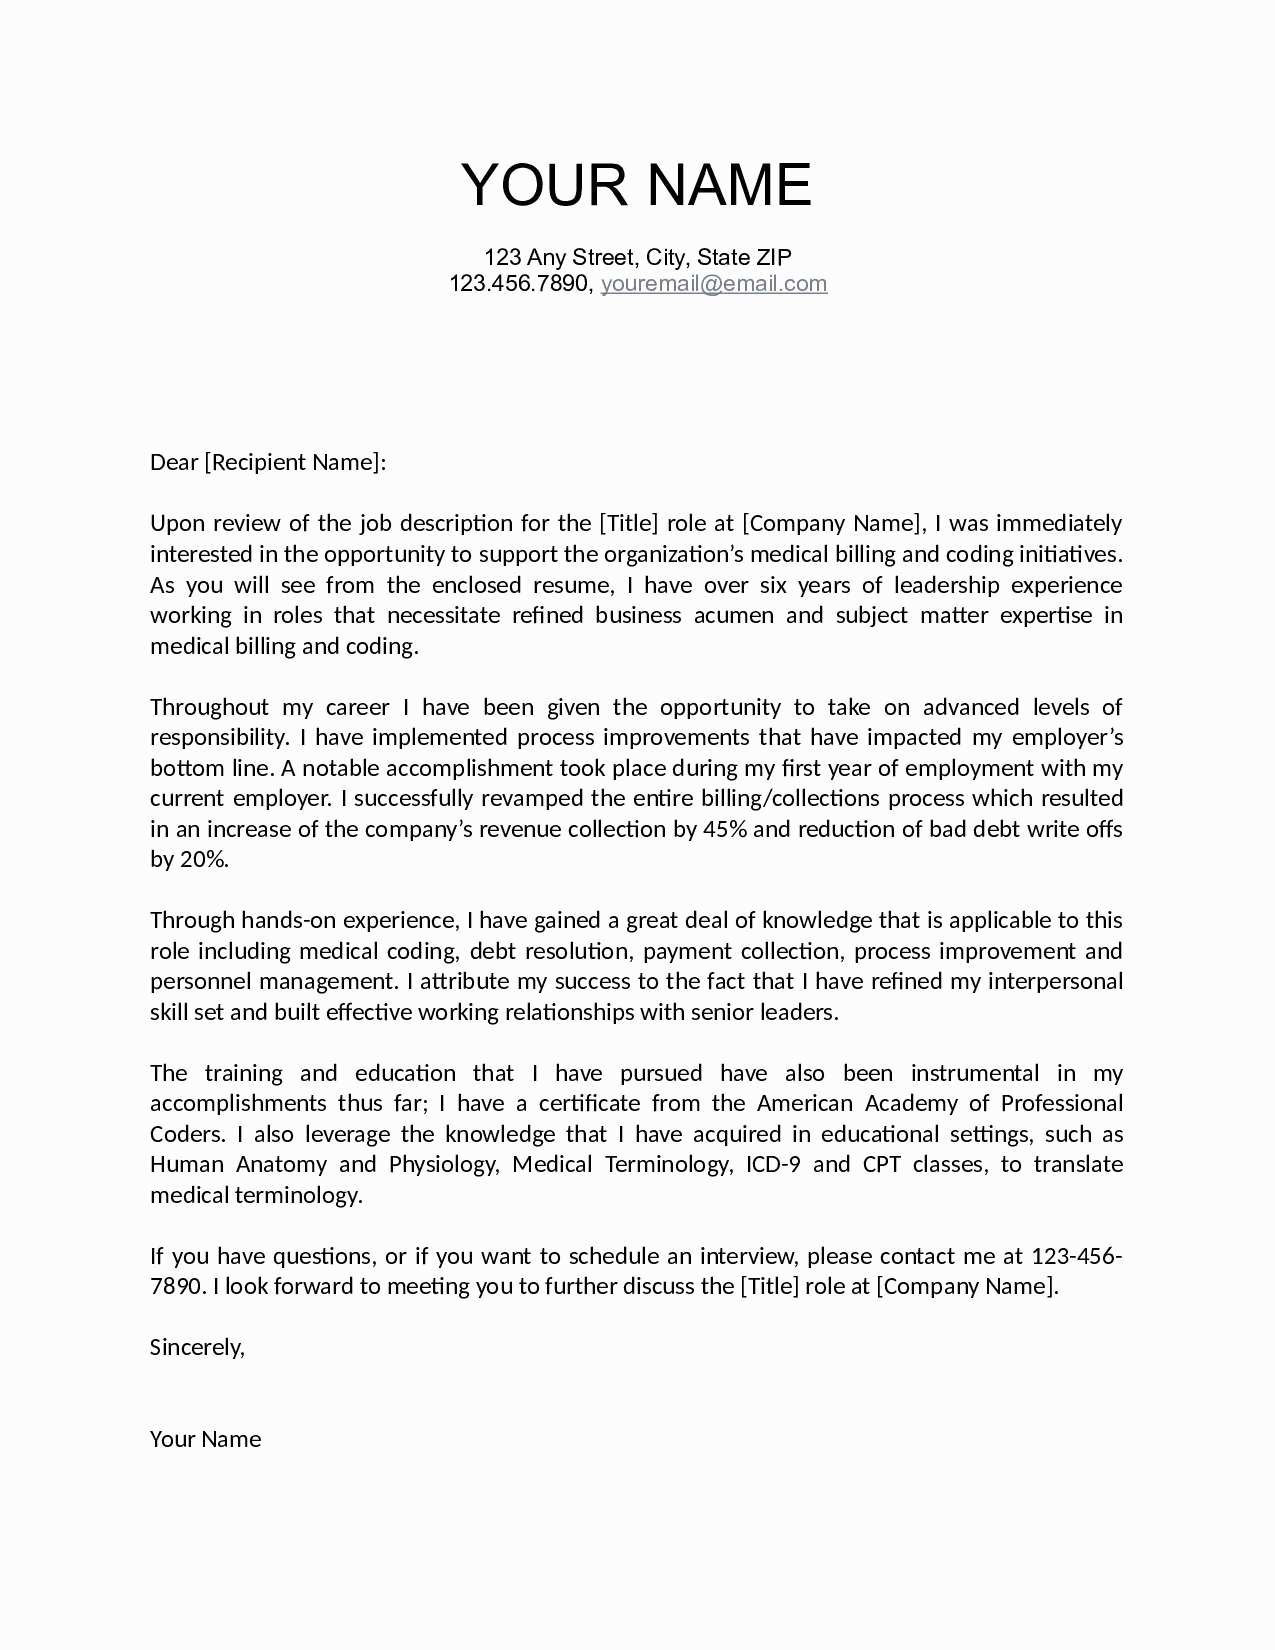 Business Collection Letter Template - Simple Resume Letter format